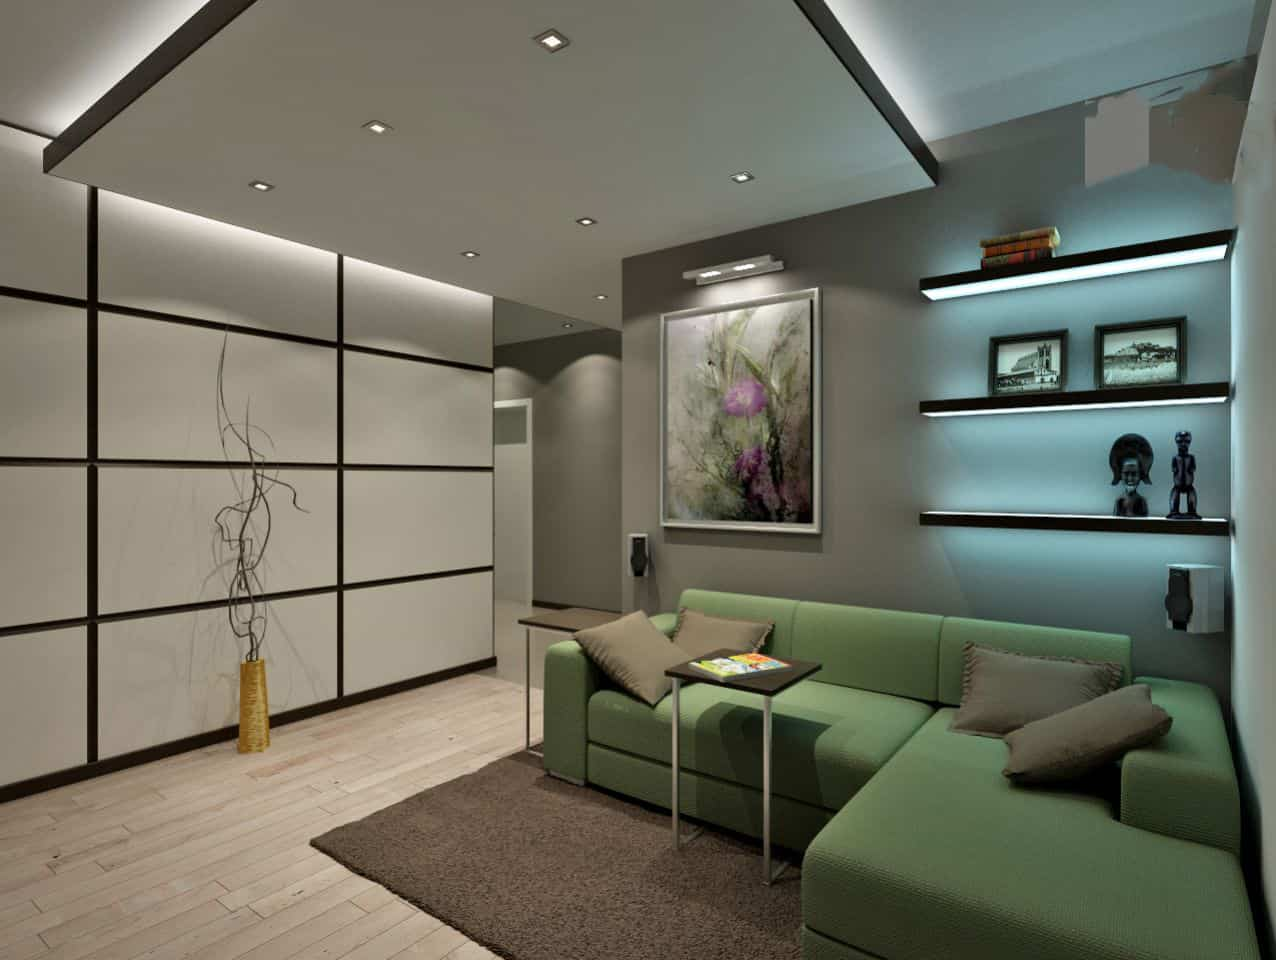 Living room ideas high tech living room house interior for Ceiling designs for living room images